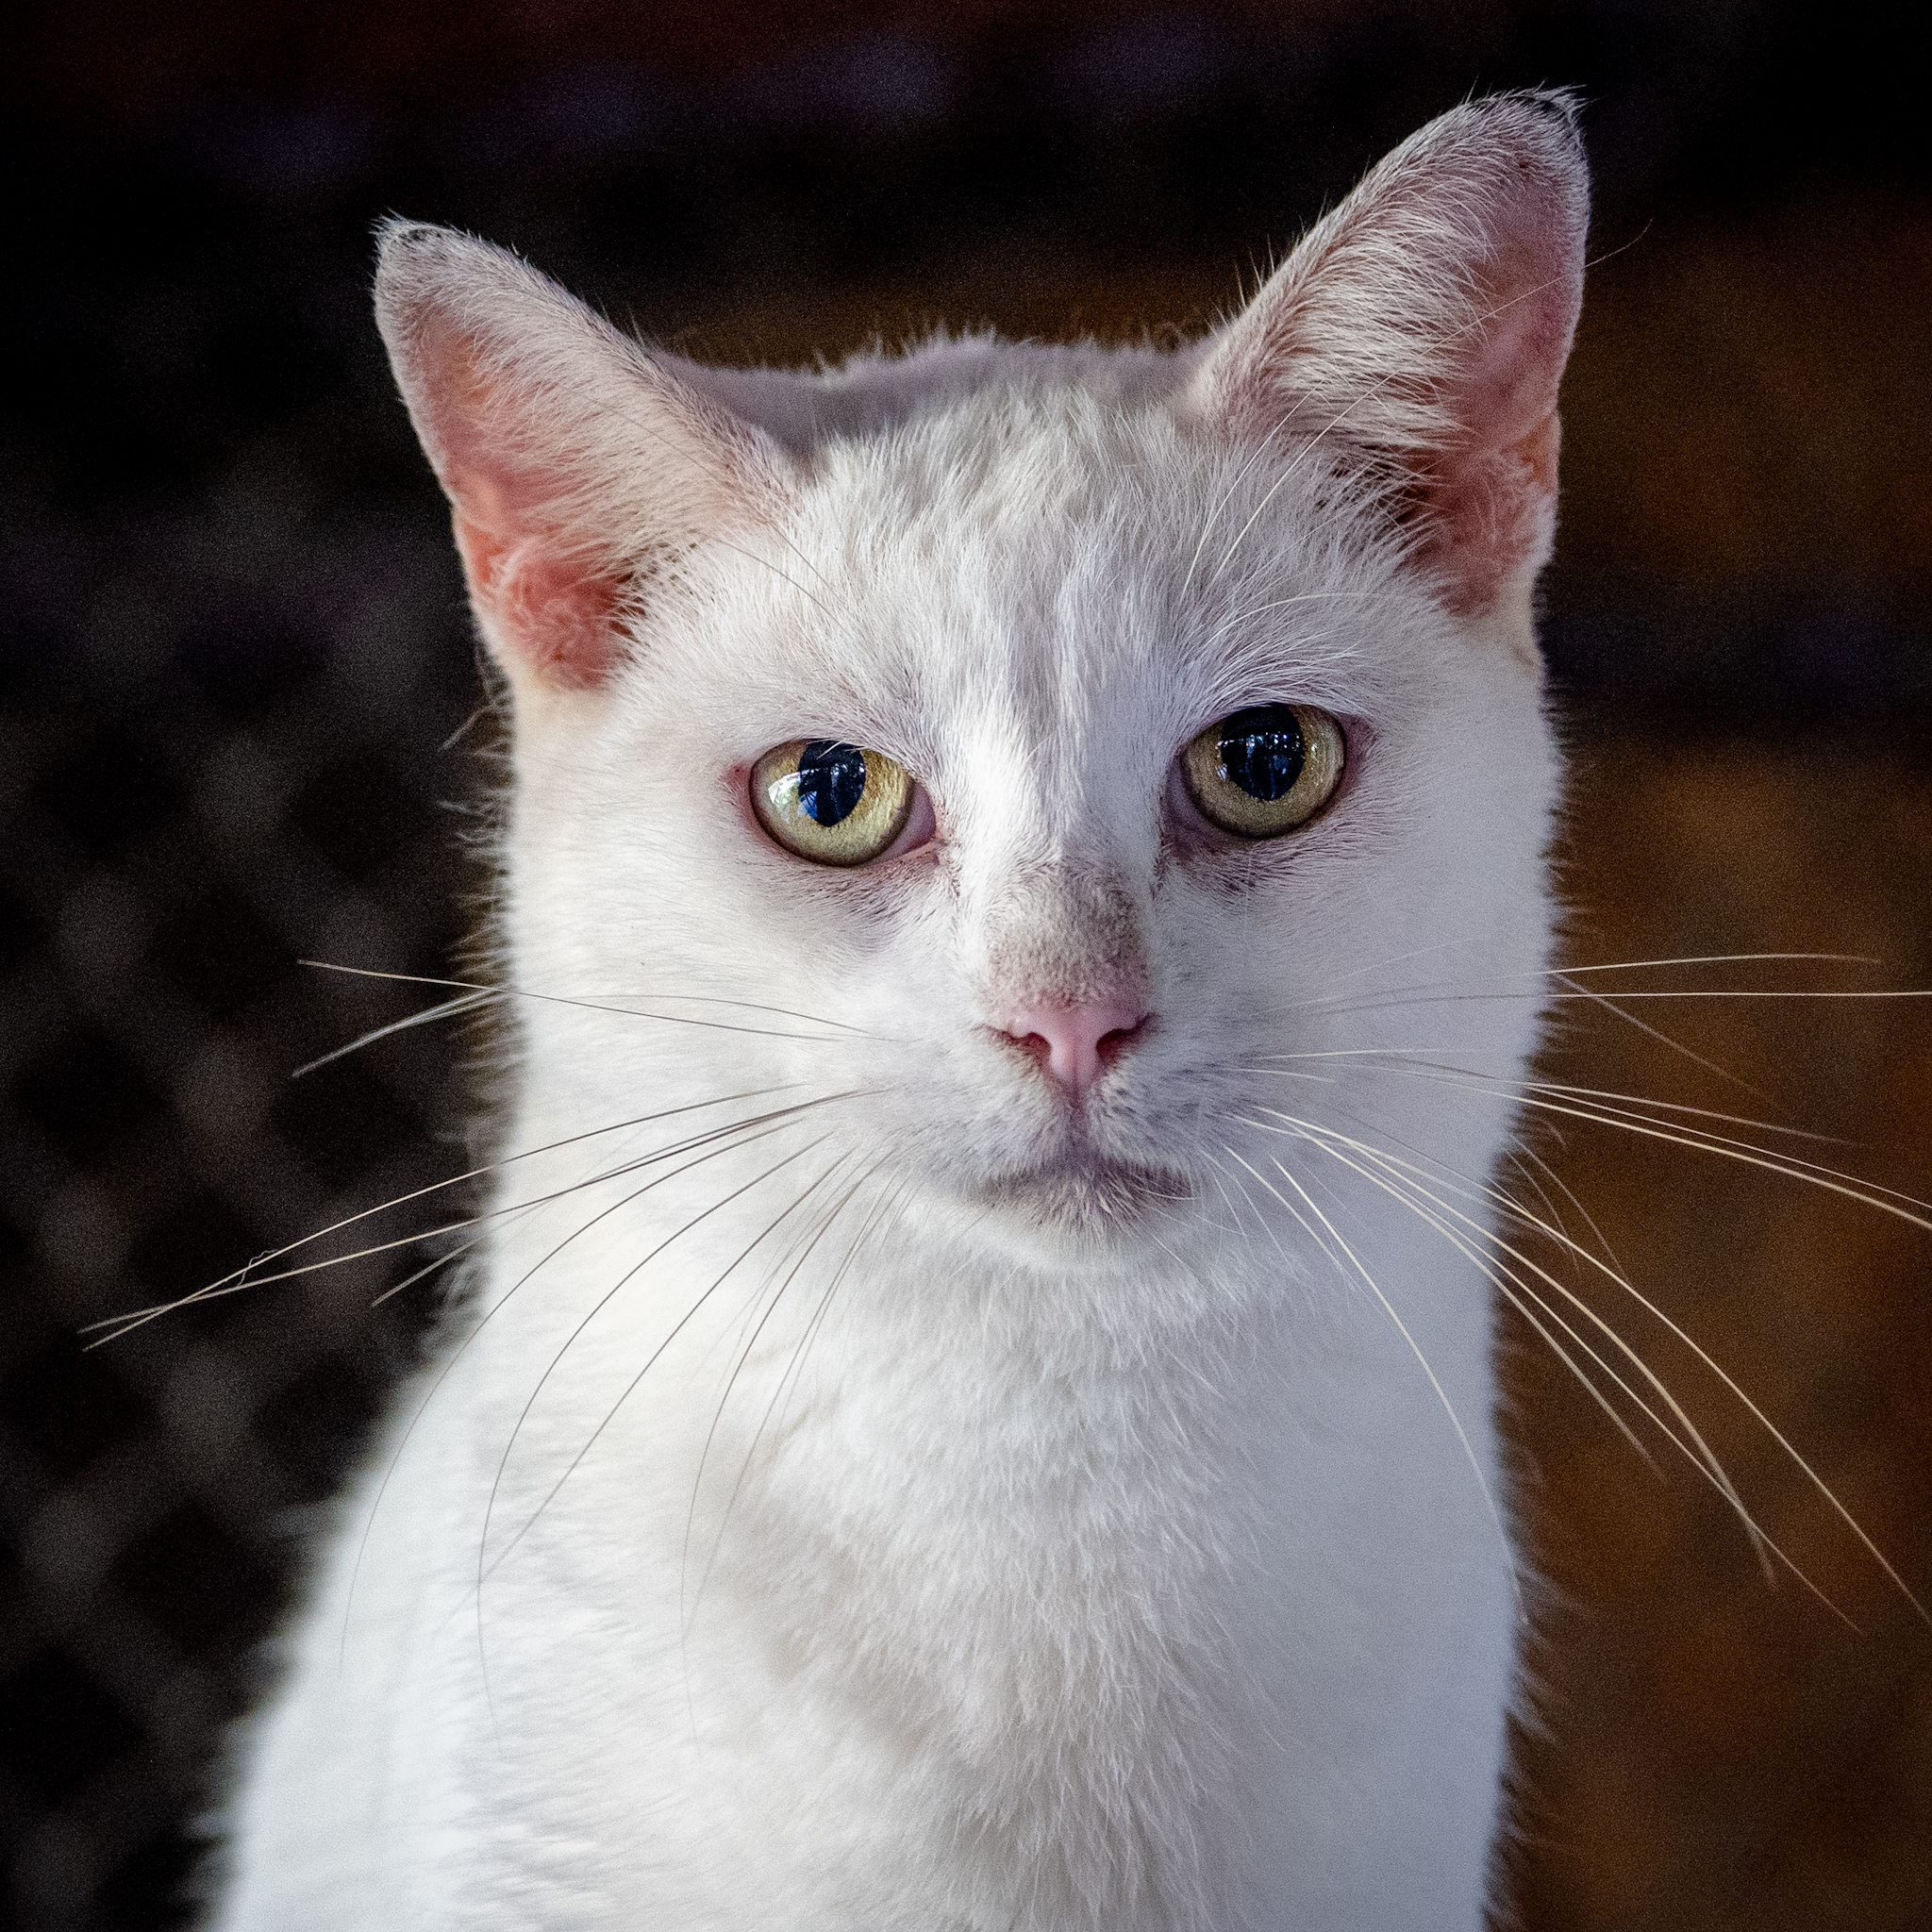 A white cat with orange ears looking at the camera.